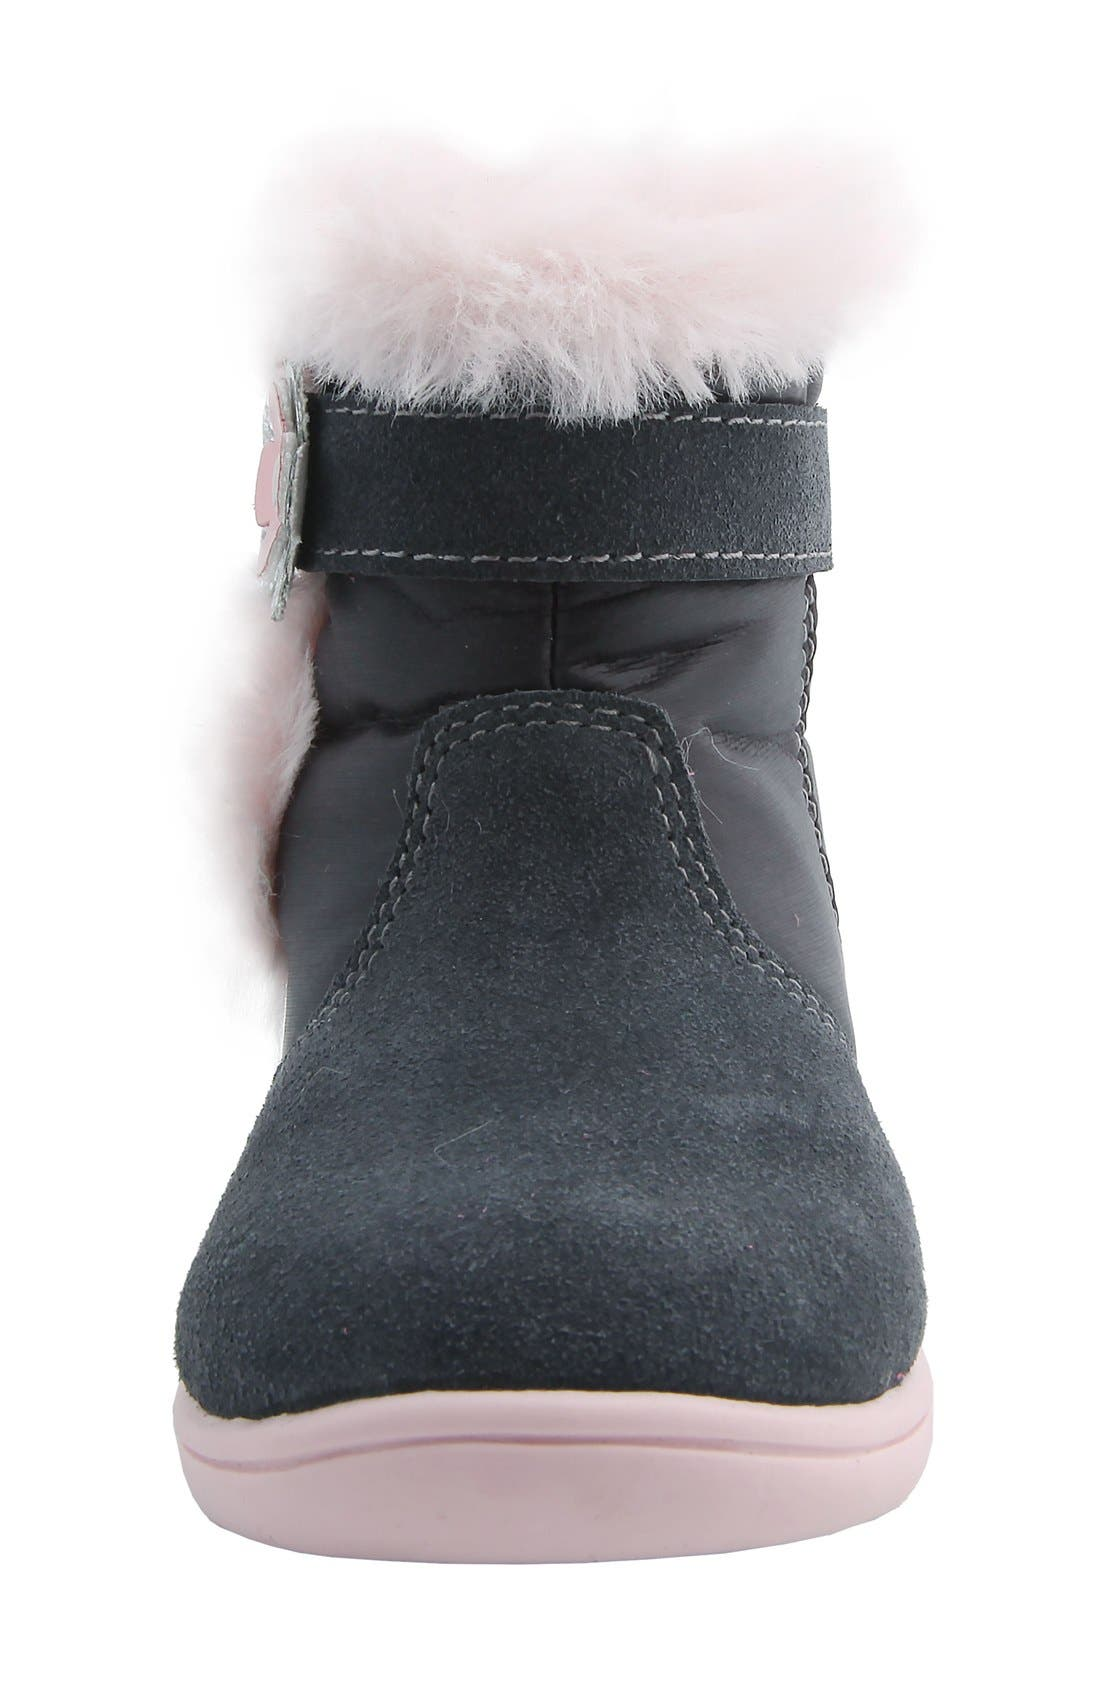 MOBILITY, Nina 'Anya' Faux Fur Bootie, Alternate thumbnail 4, color, GREY SUEDE